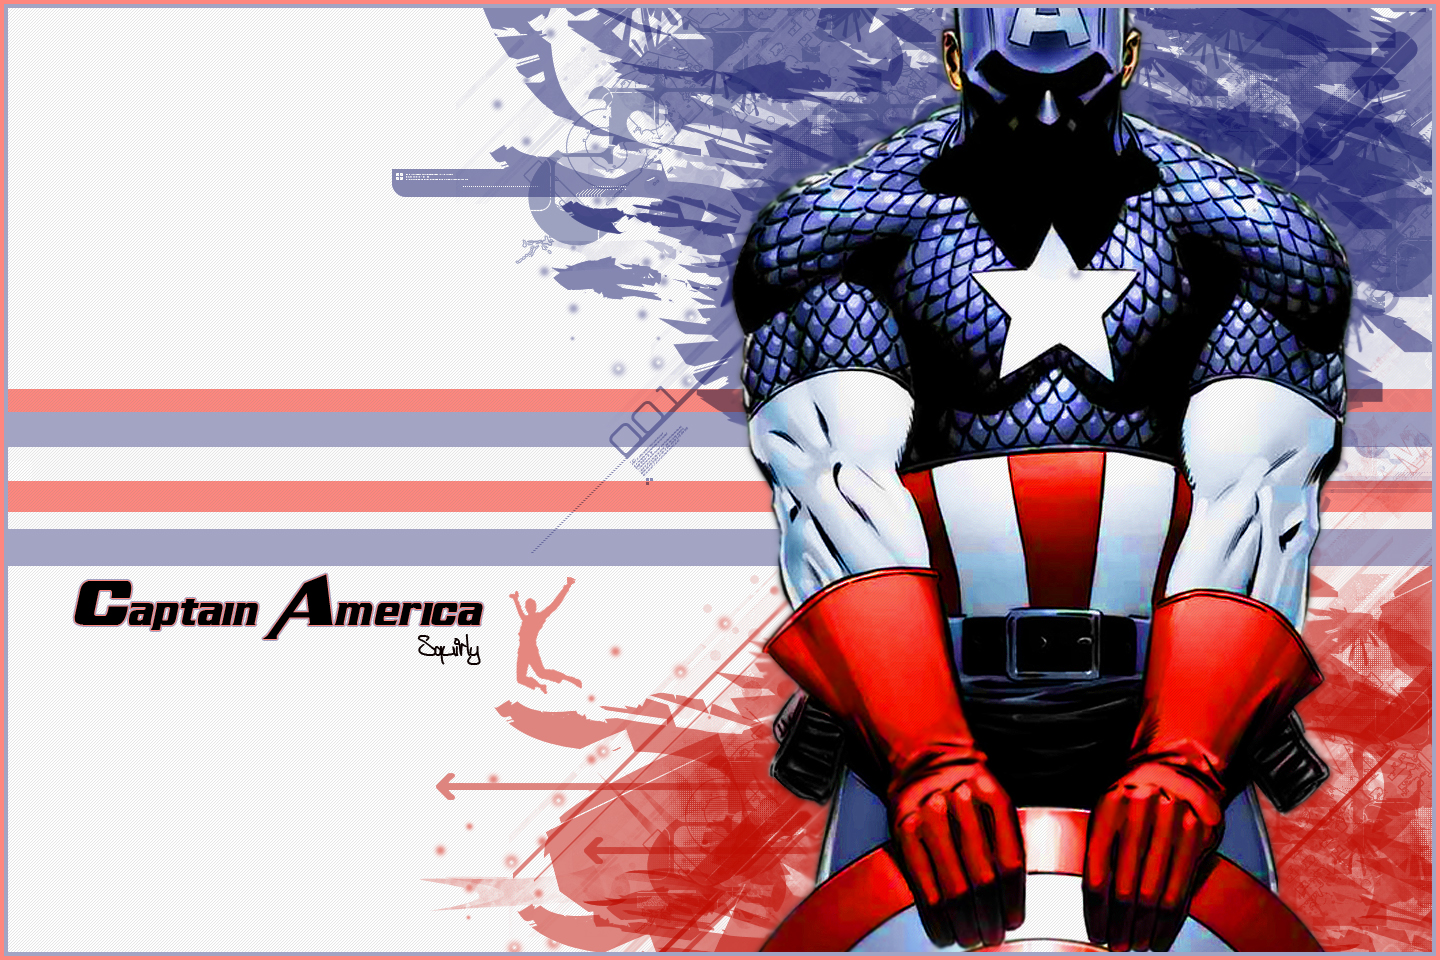 captain america Wallpaper Background 18823 1440x960